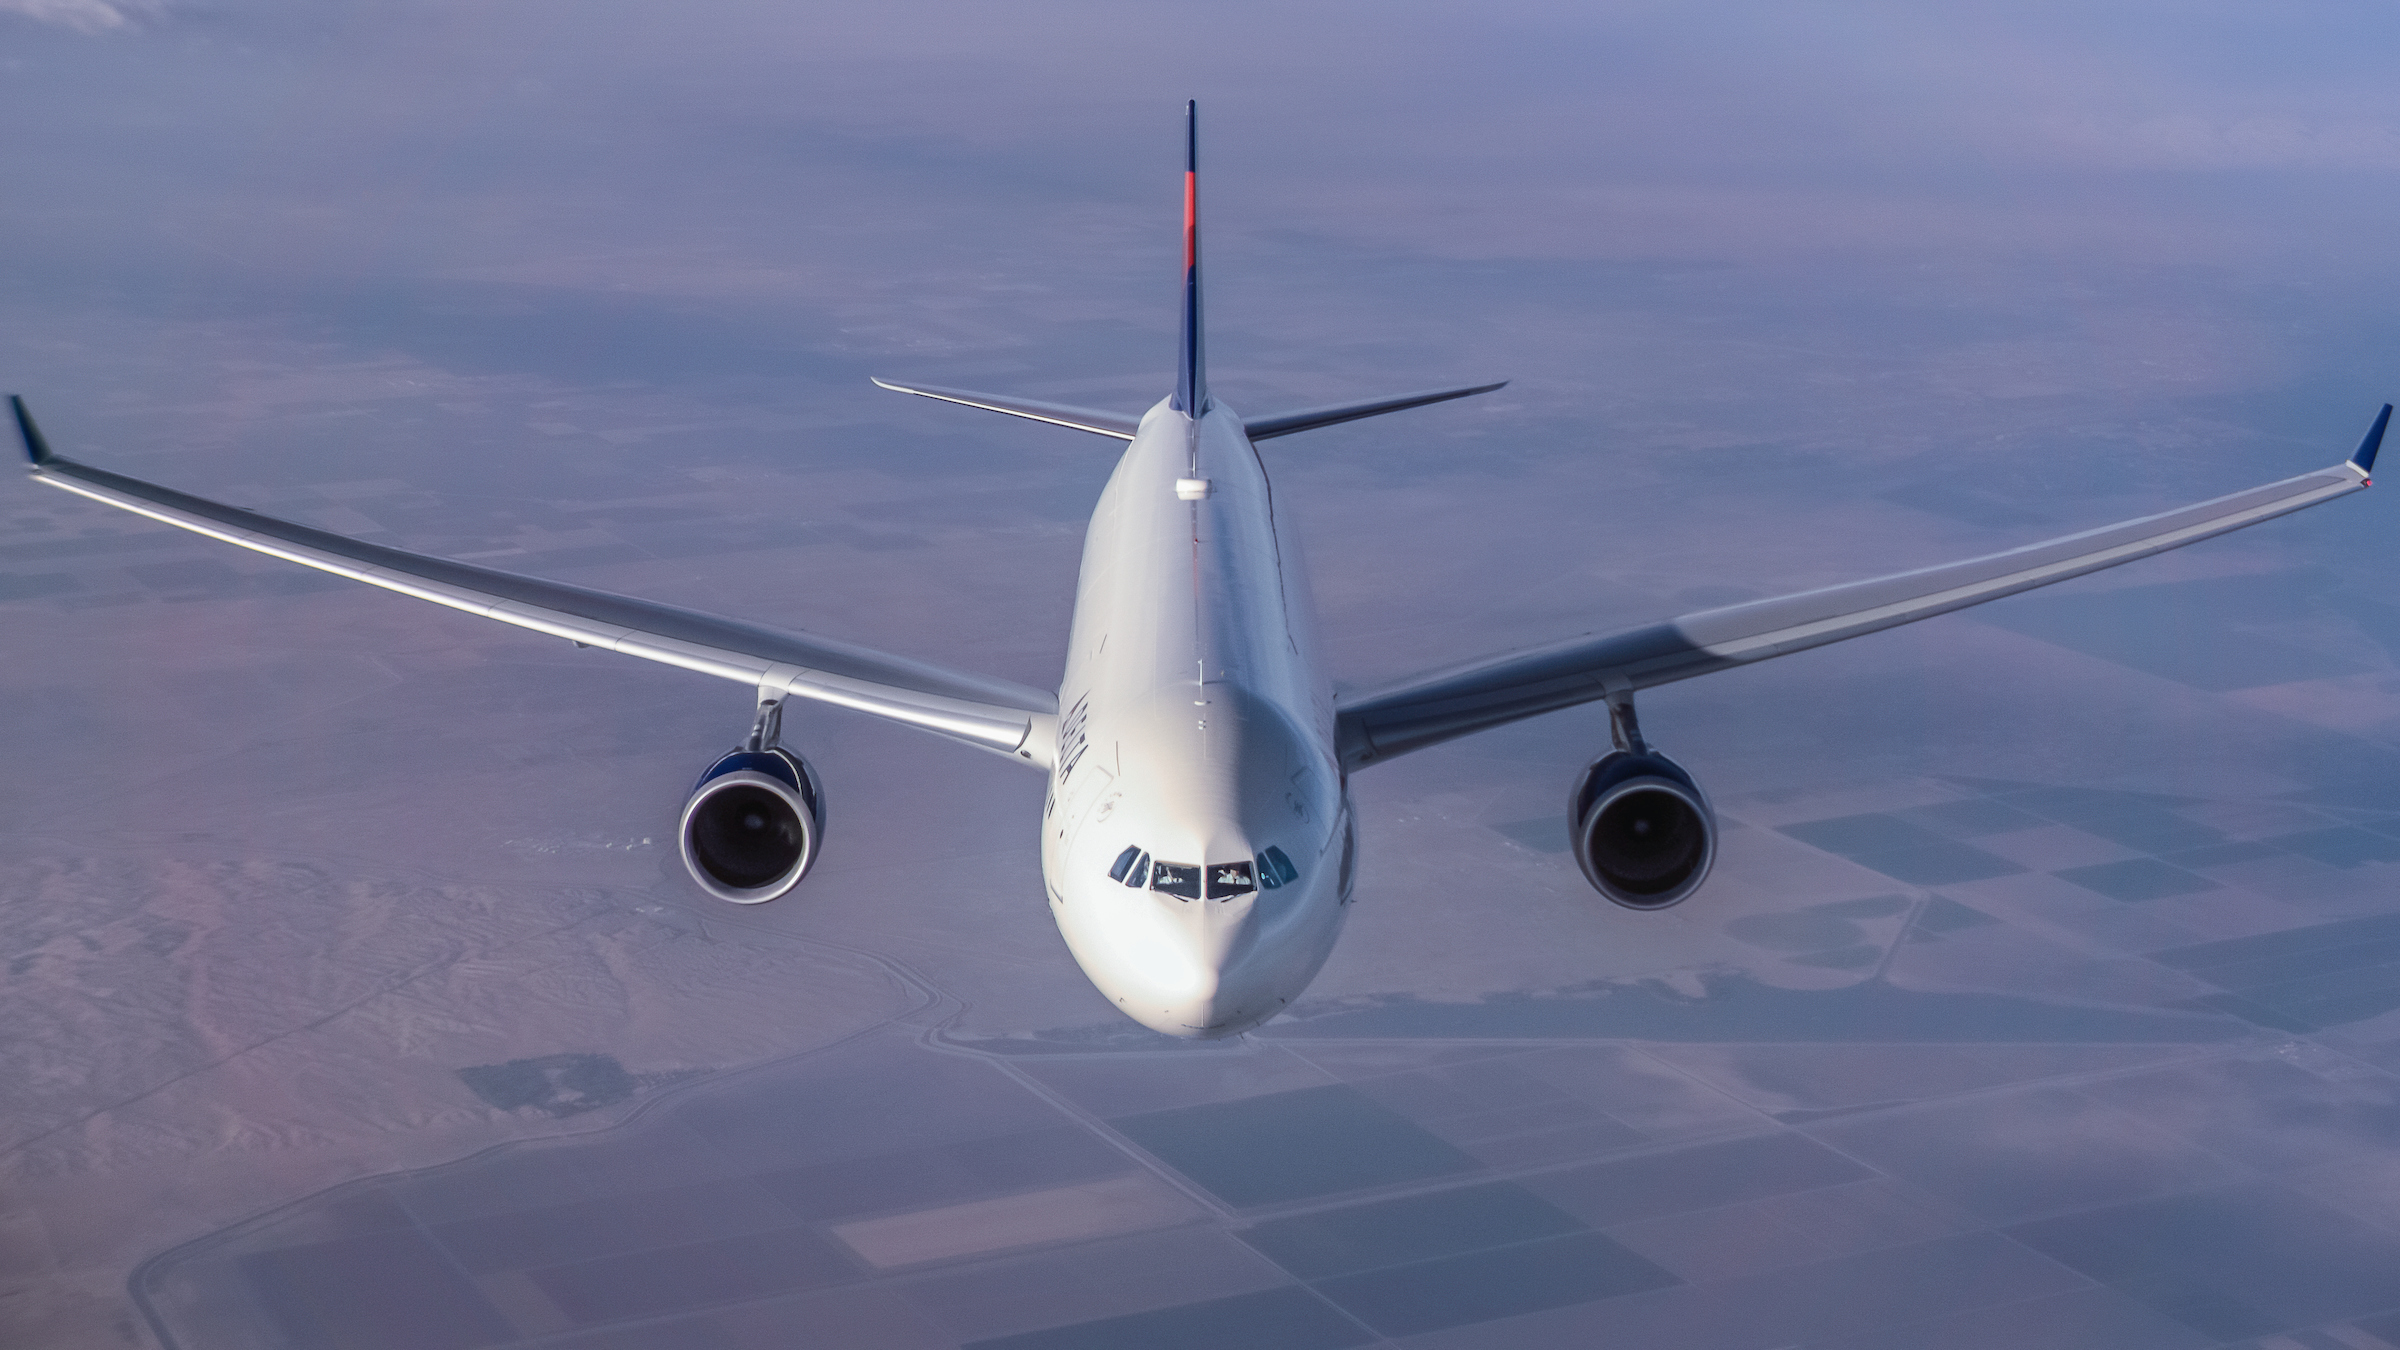 Delta Expresses Concern About Federal Agency Ignoring Fly America